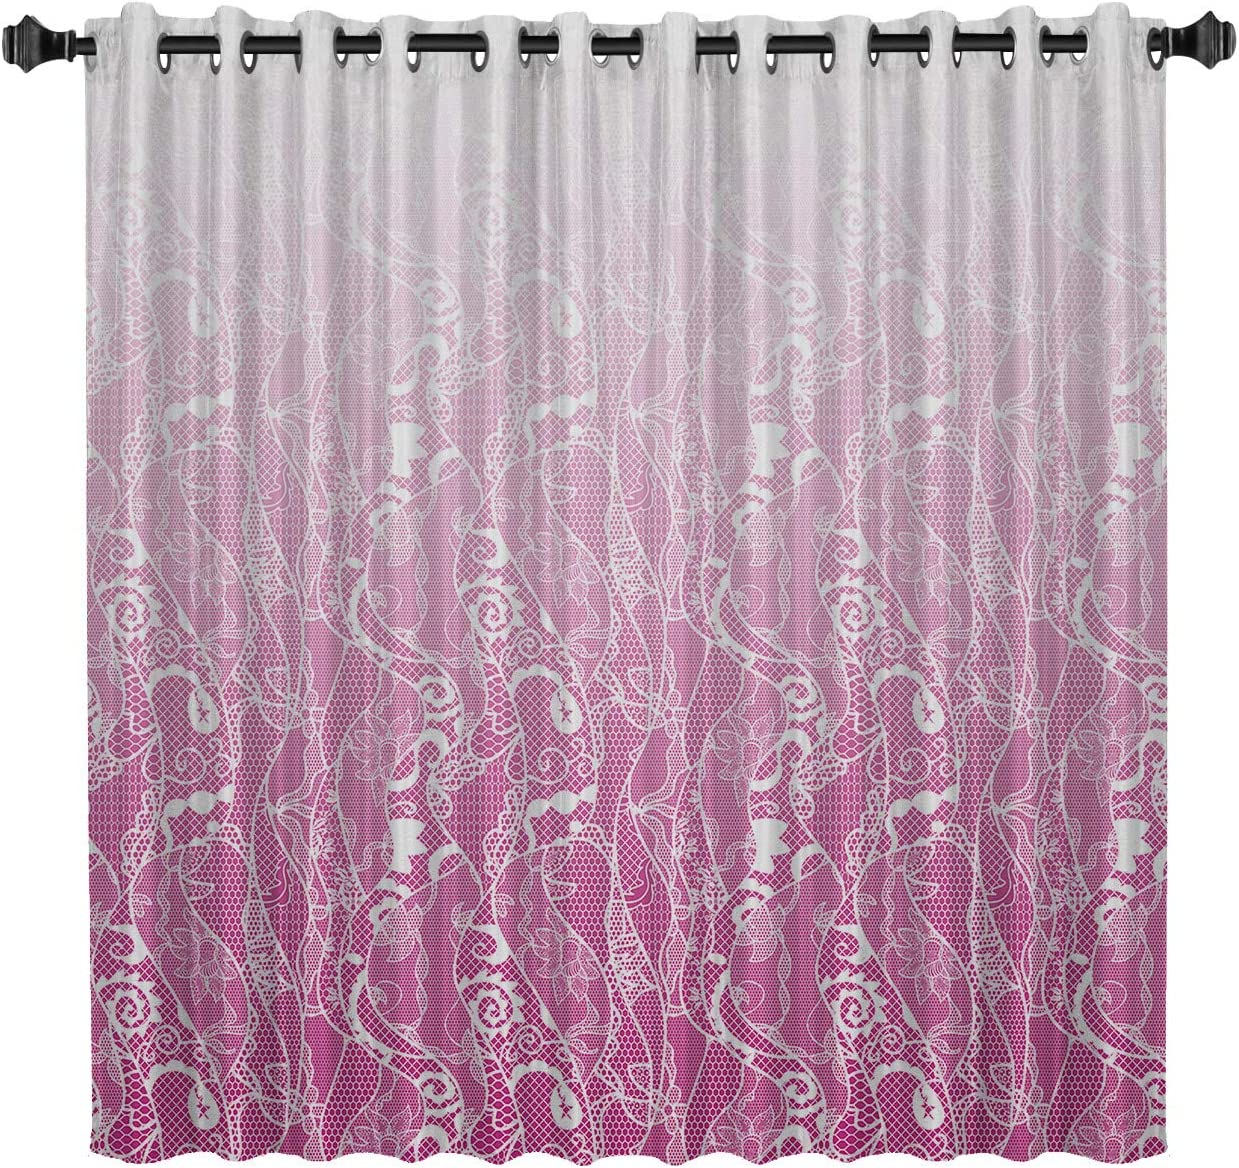 Cash special price BedSweet Brand Cheap Sale Venue Blackout Room Darkening Curtains 52 Inch 96 by Gradual